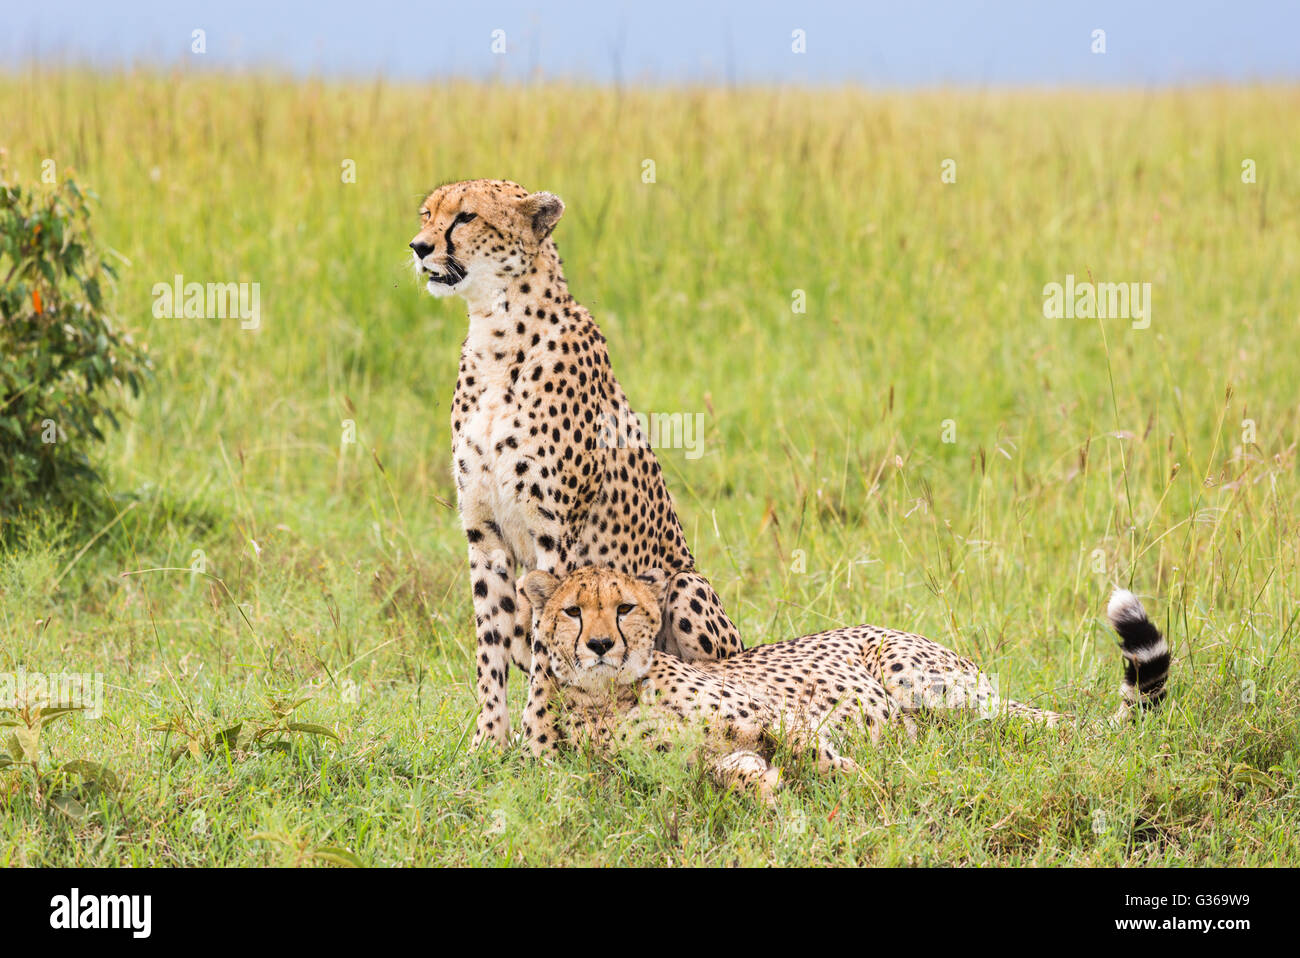 Two cheetahs in Masai Mara on the savanna, one sitting and watching and the other is lying down in the grass resting Stock Photo